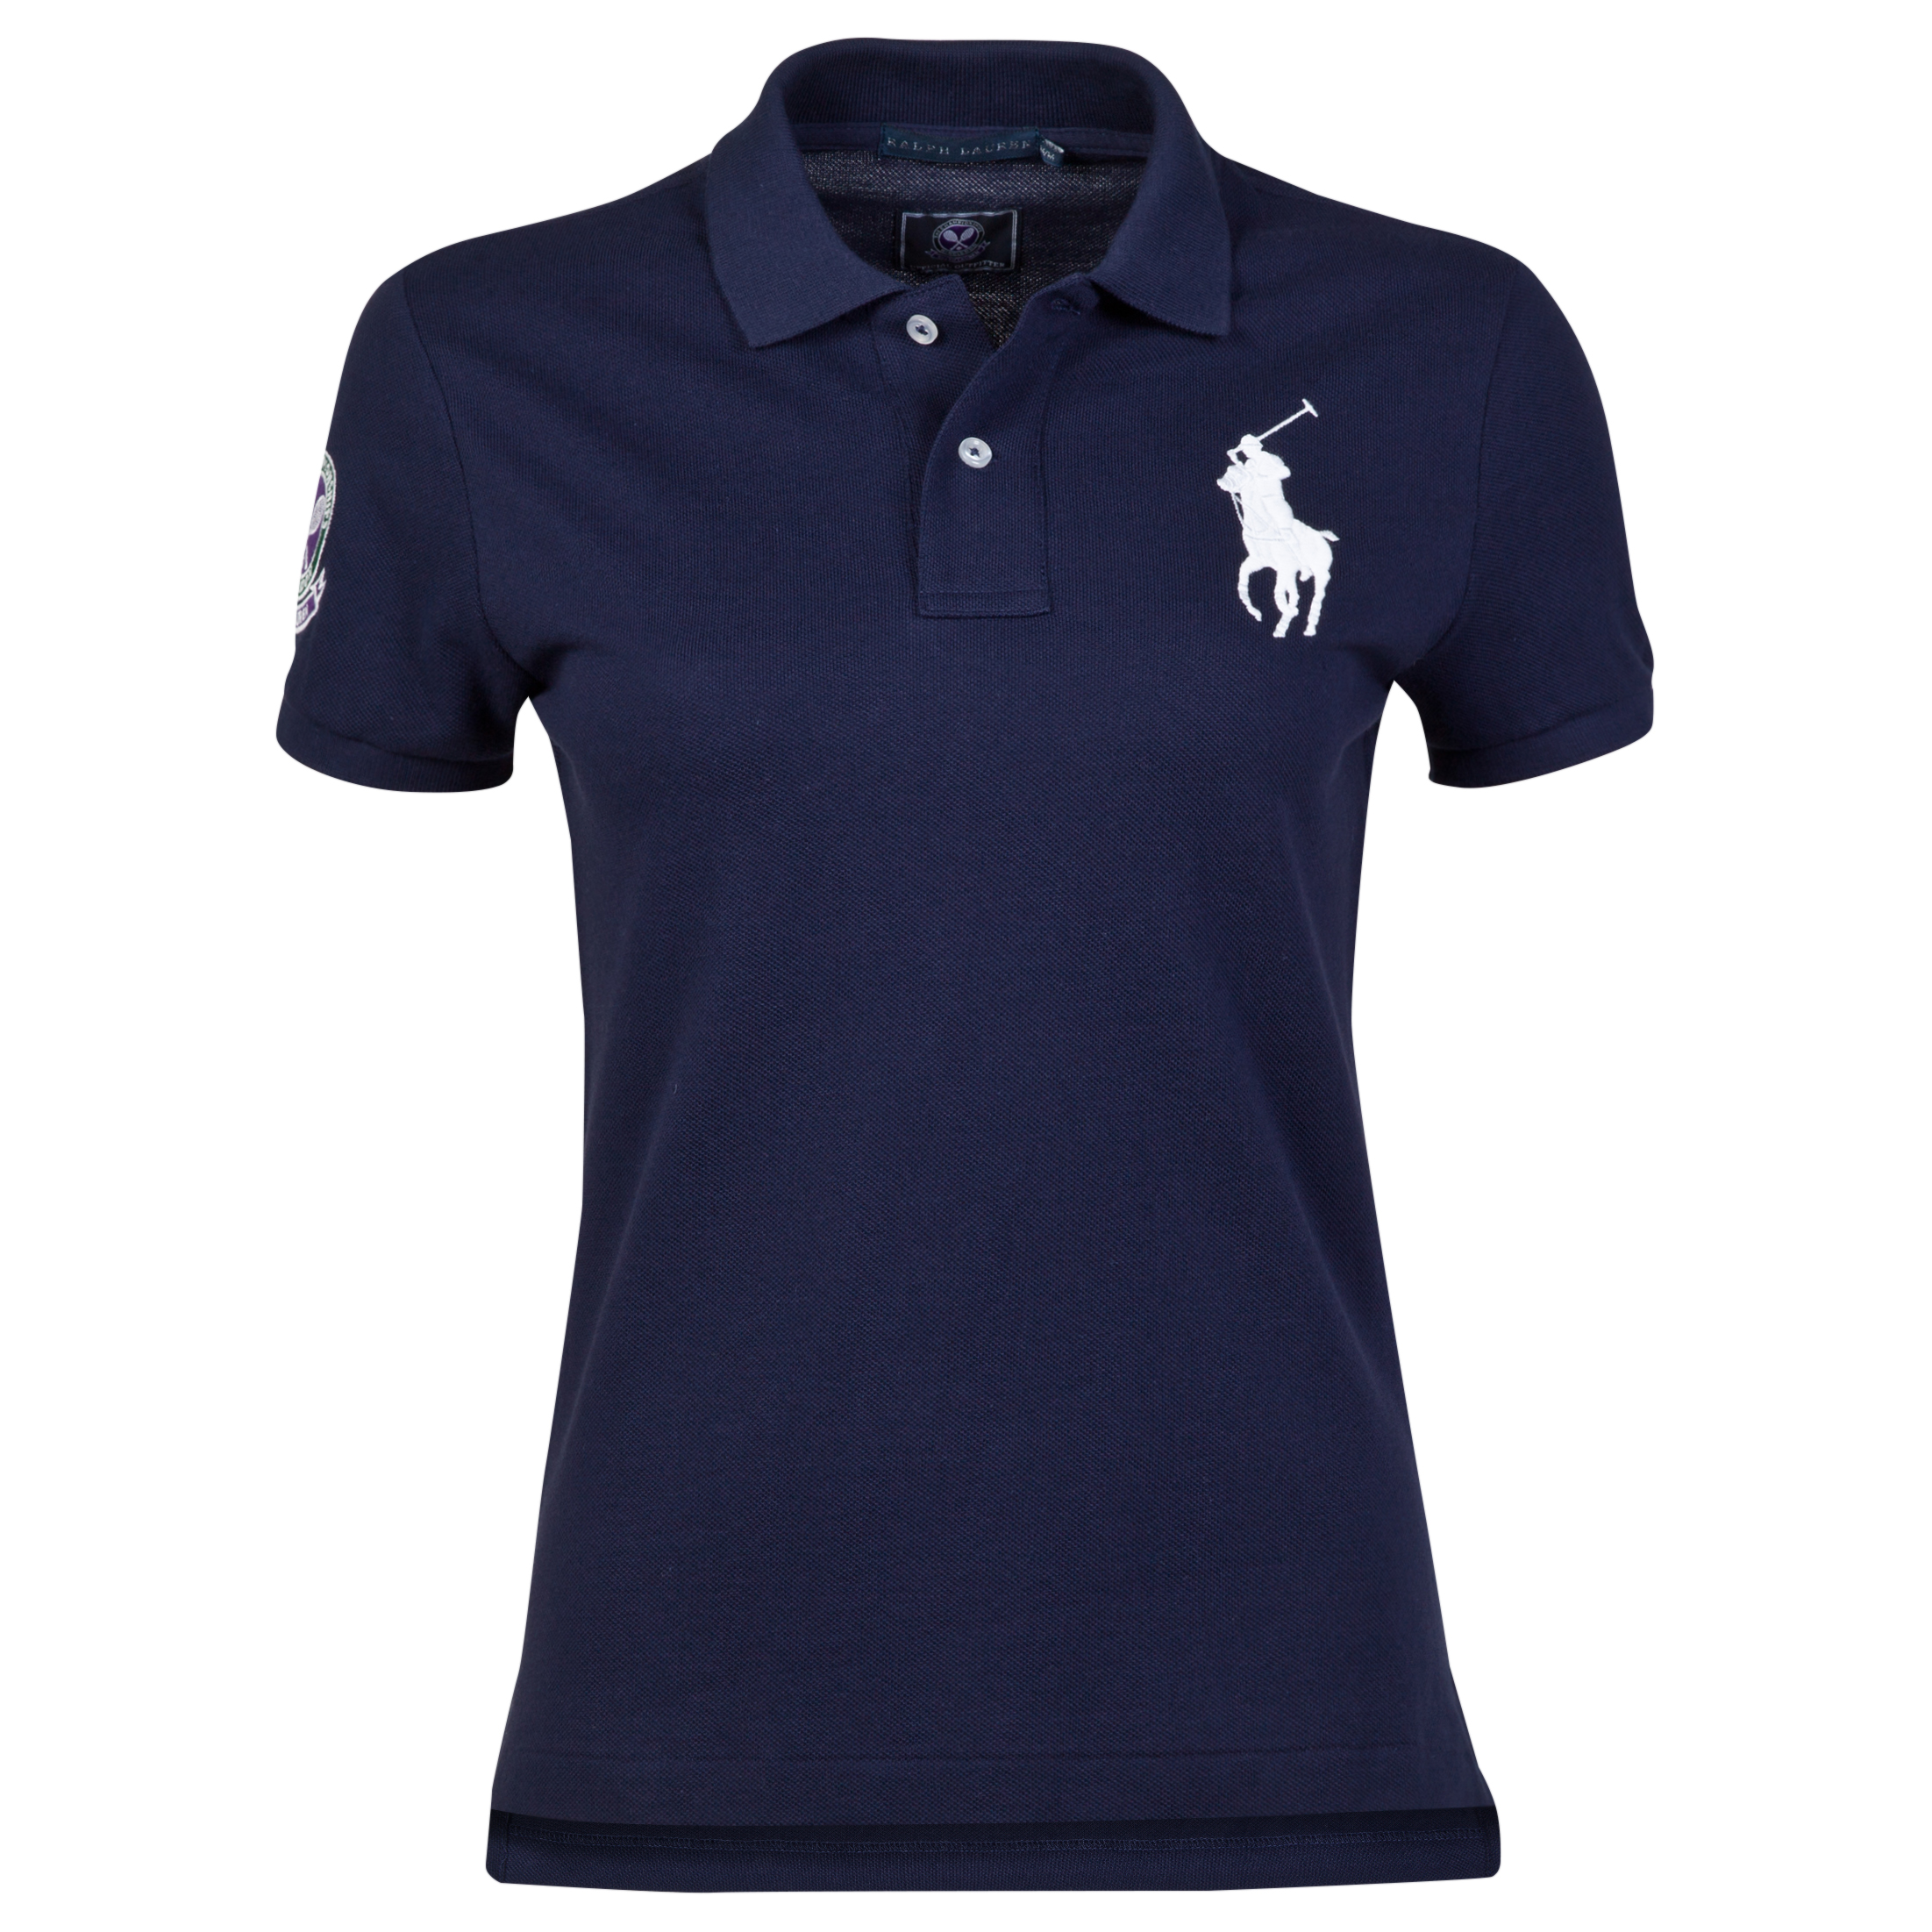 Wimbledon Ralph Lauren Wimbledon Polo - Womens French White